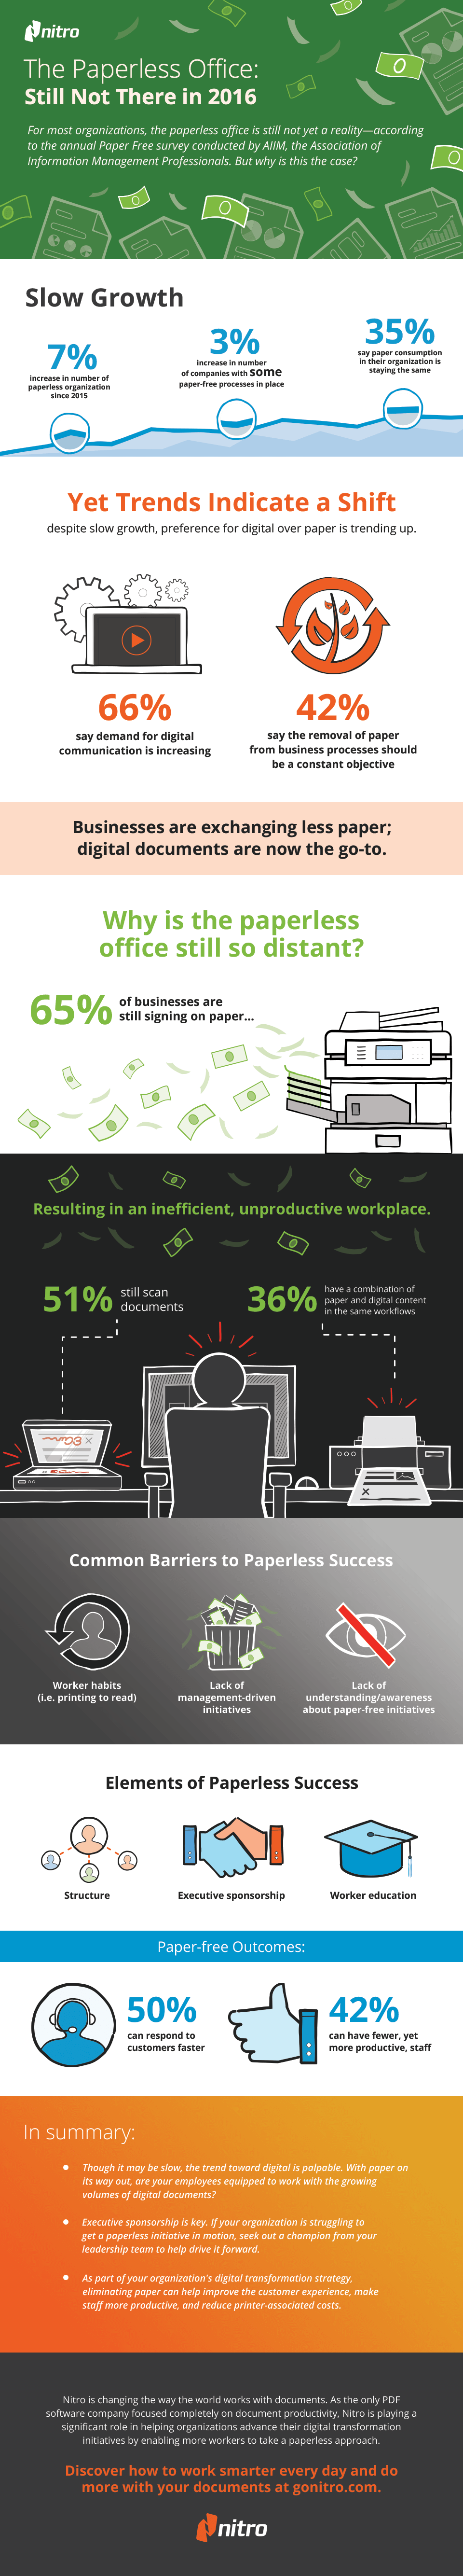 INFOGRAPHIC: The Paperless Office: Still Not There in 2016